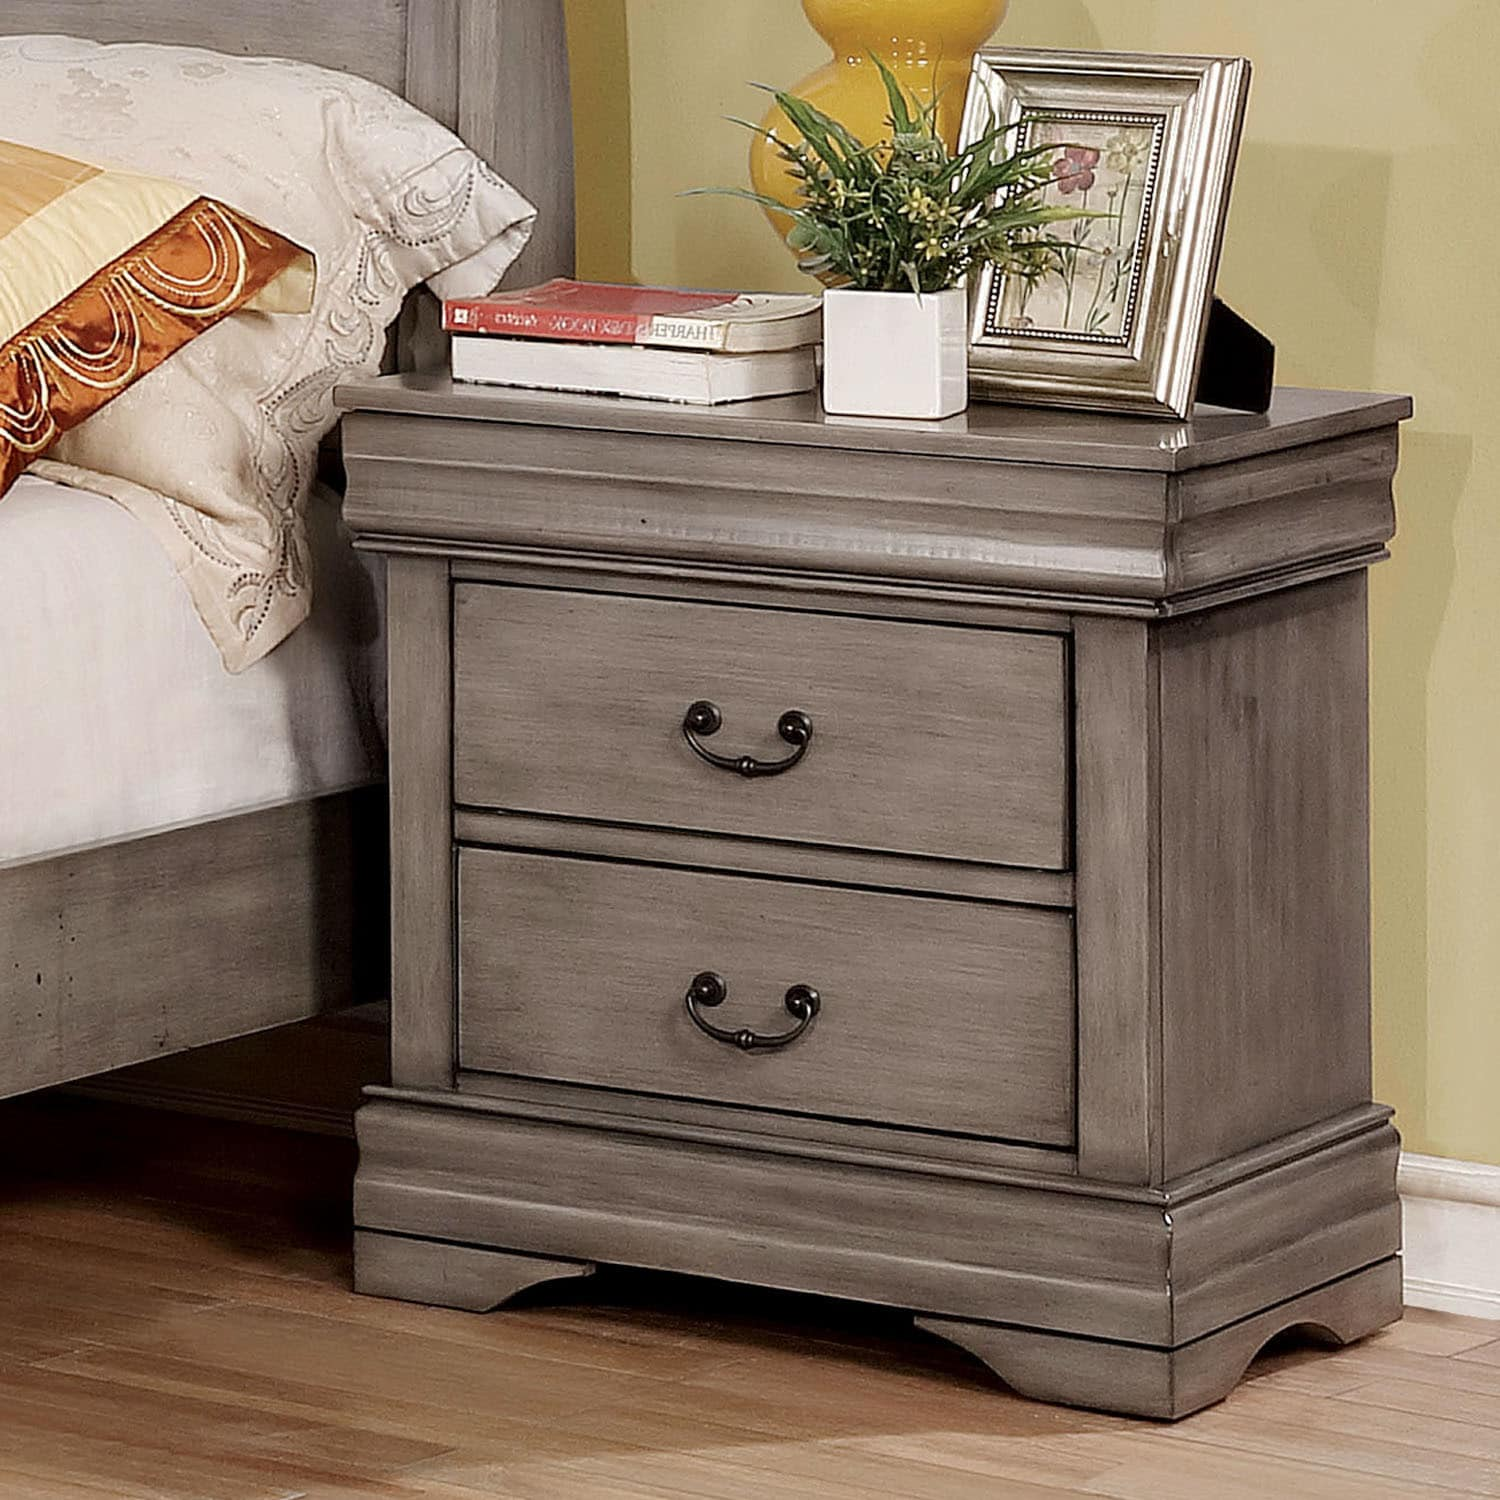 Furniture Overstock Shop Furniture Of America Anna Transitional 2 Drawer Nightstand